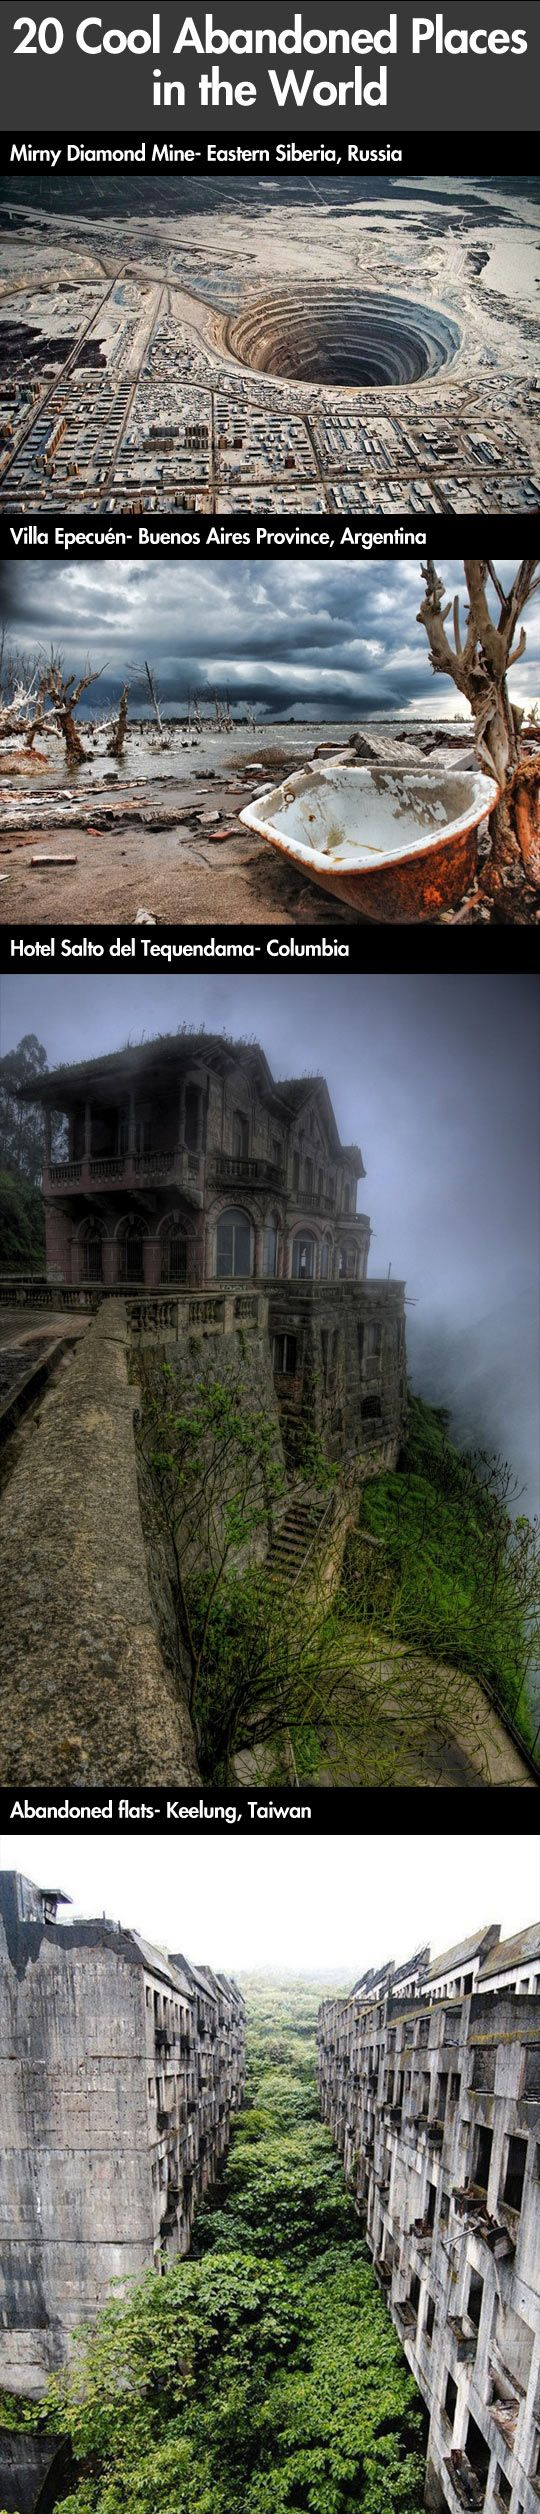 cool-abandoned-places-world